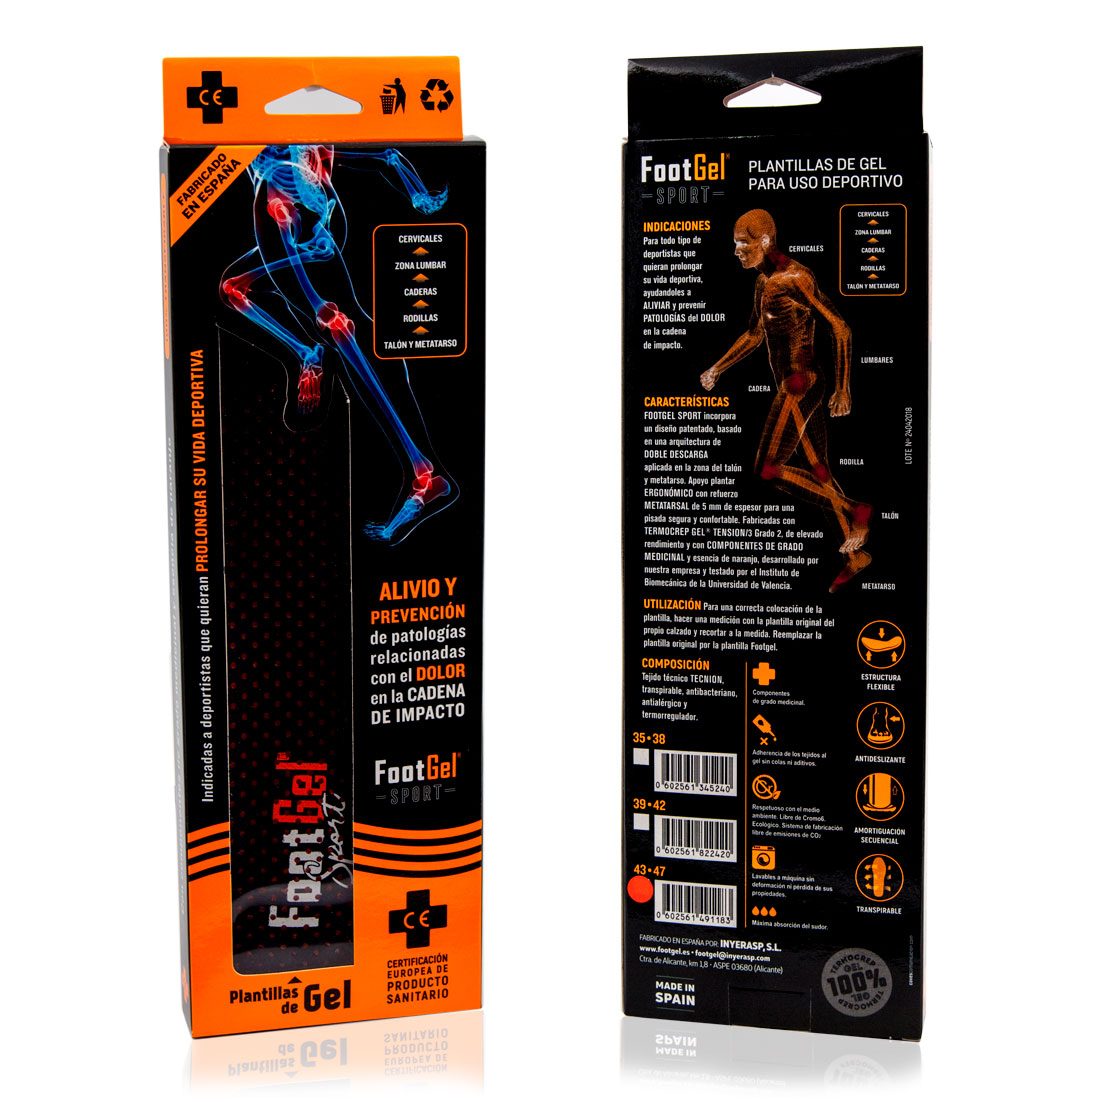 footgel-sport-packaging